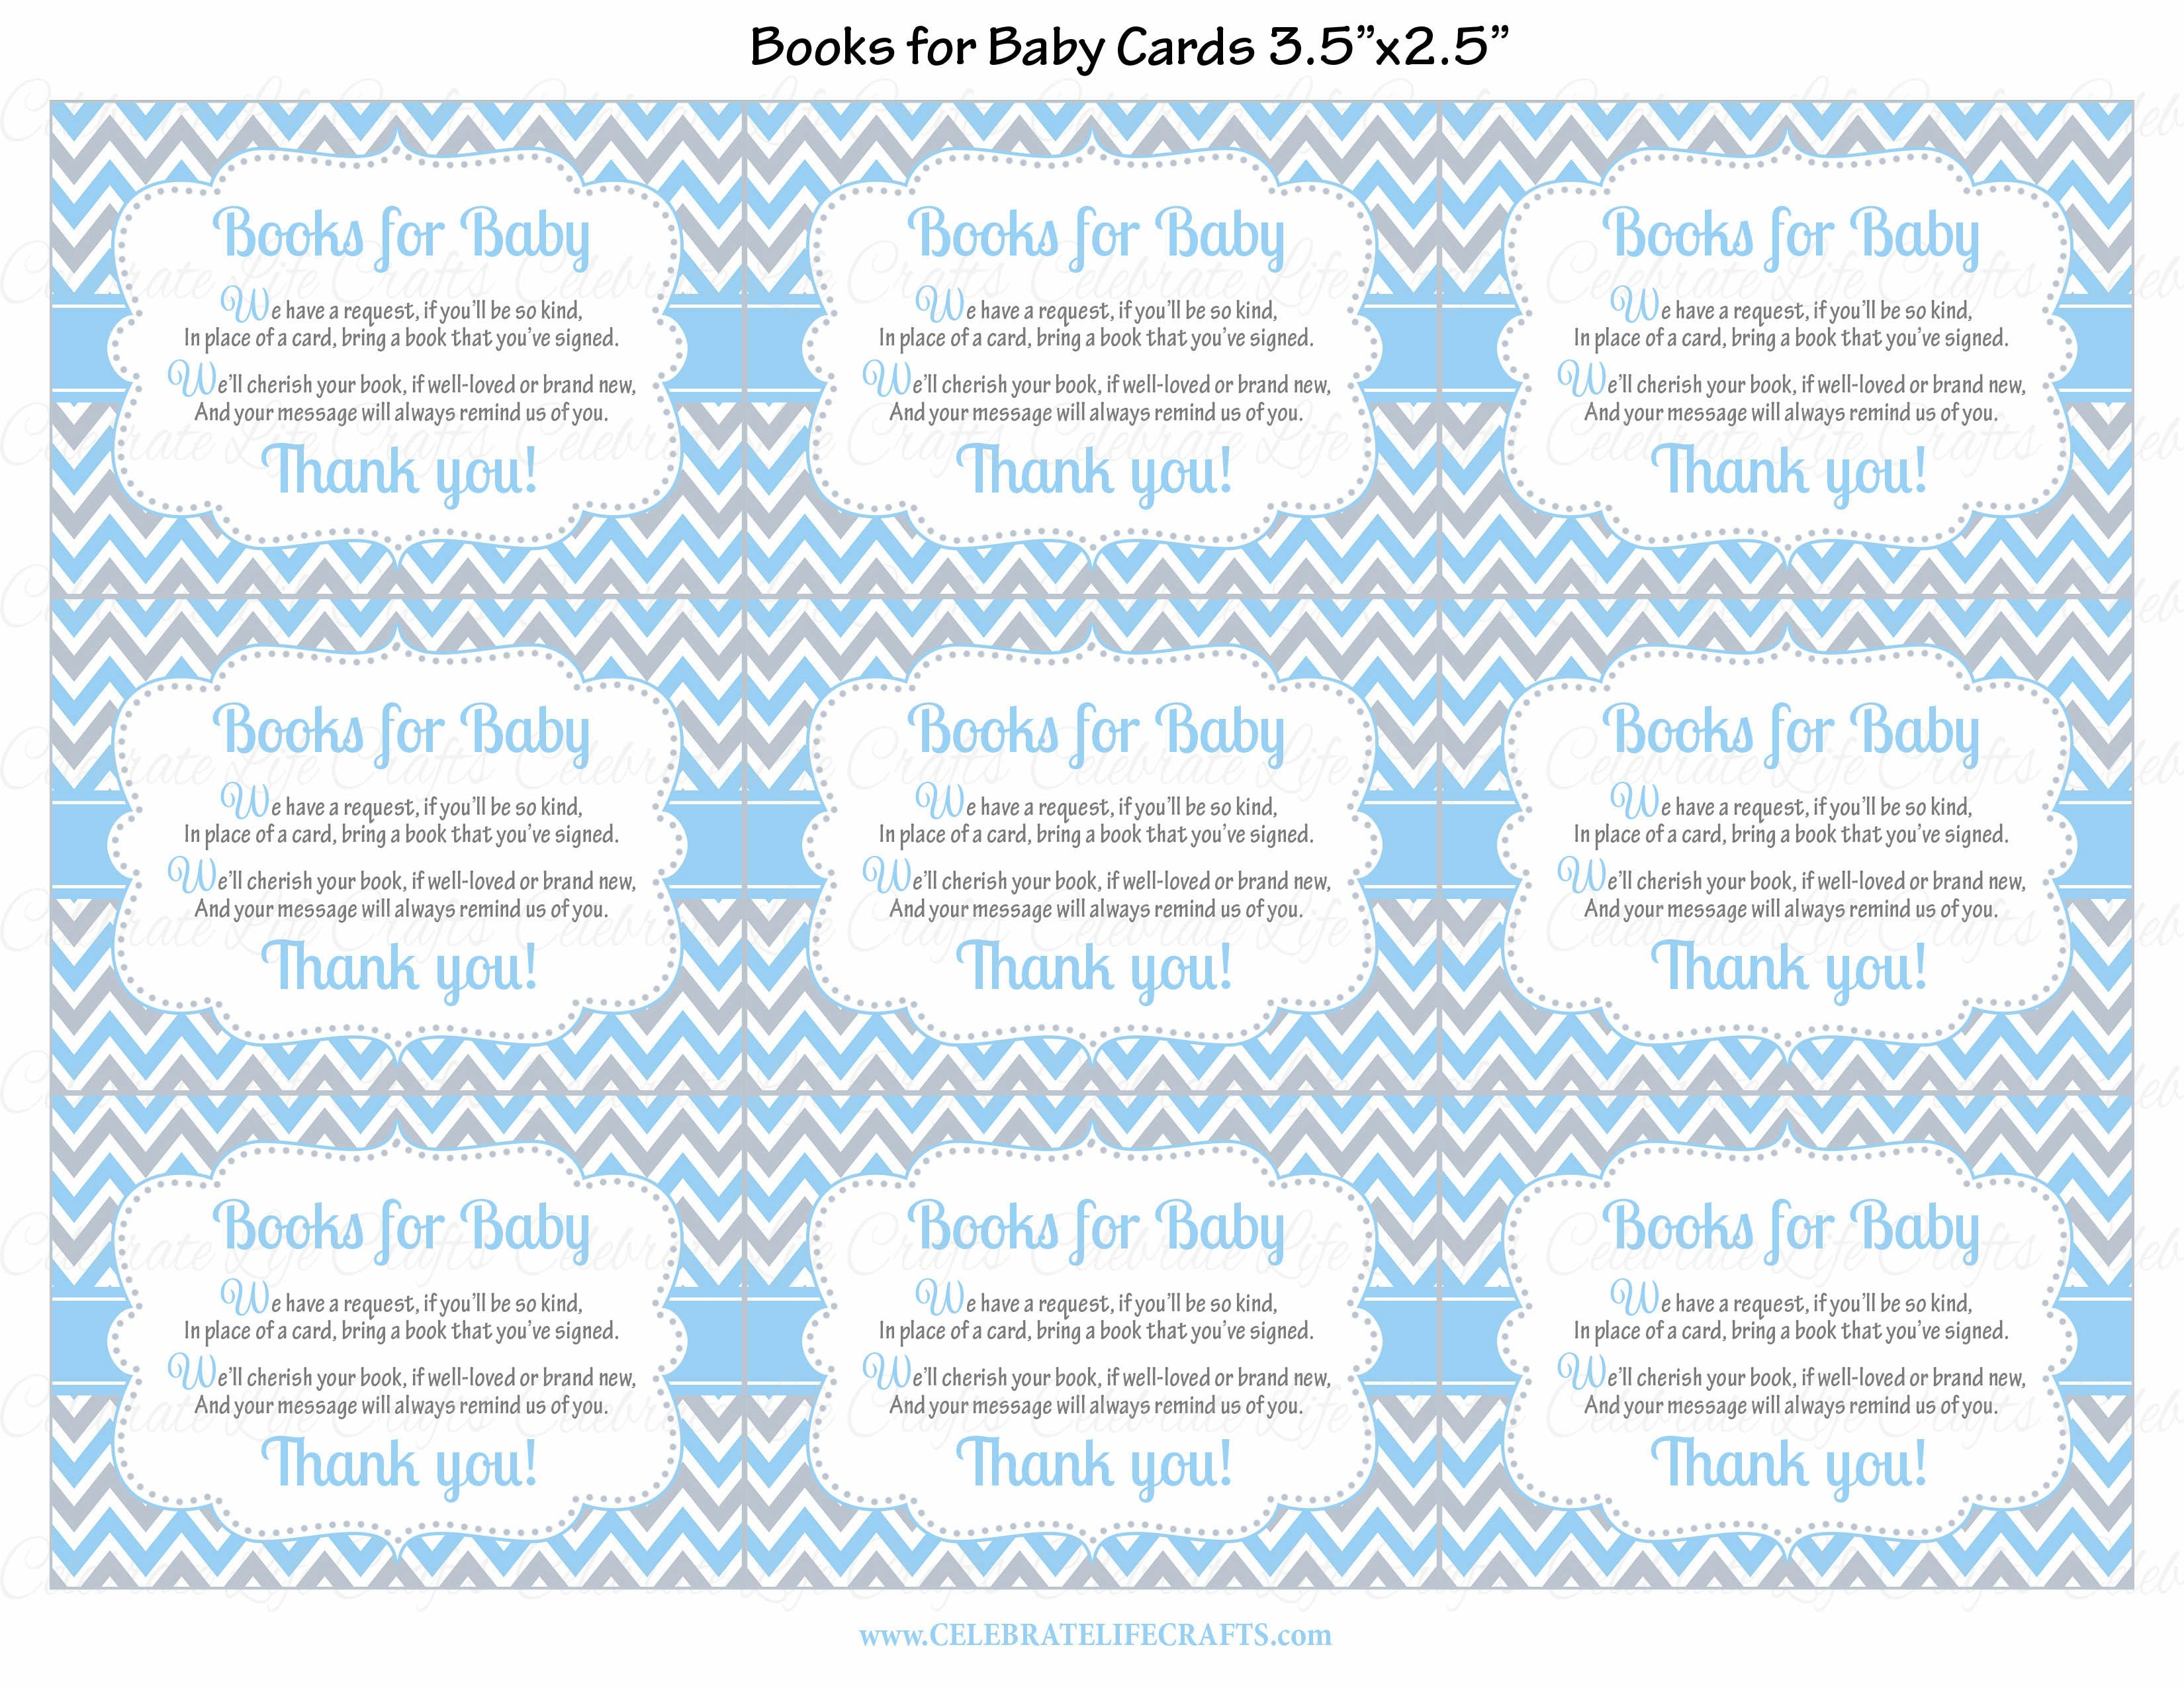 Books for Baby Invitation Inserts for Baby Shower - Little Man ...